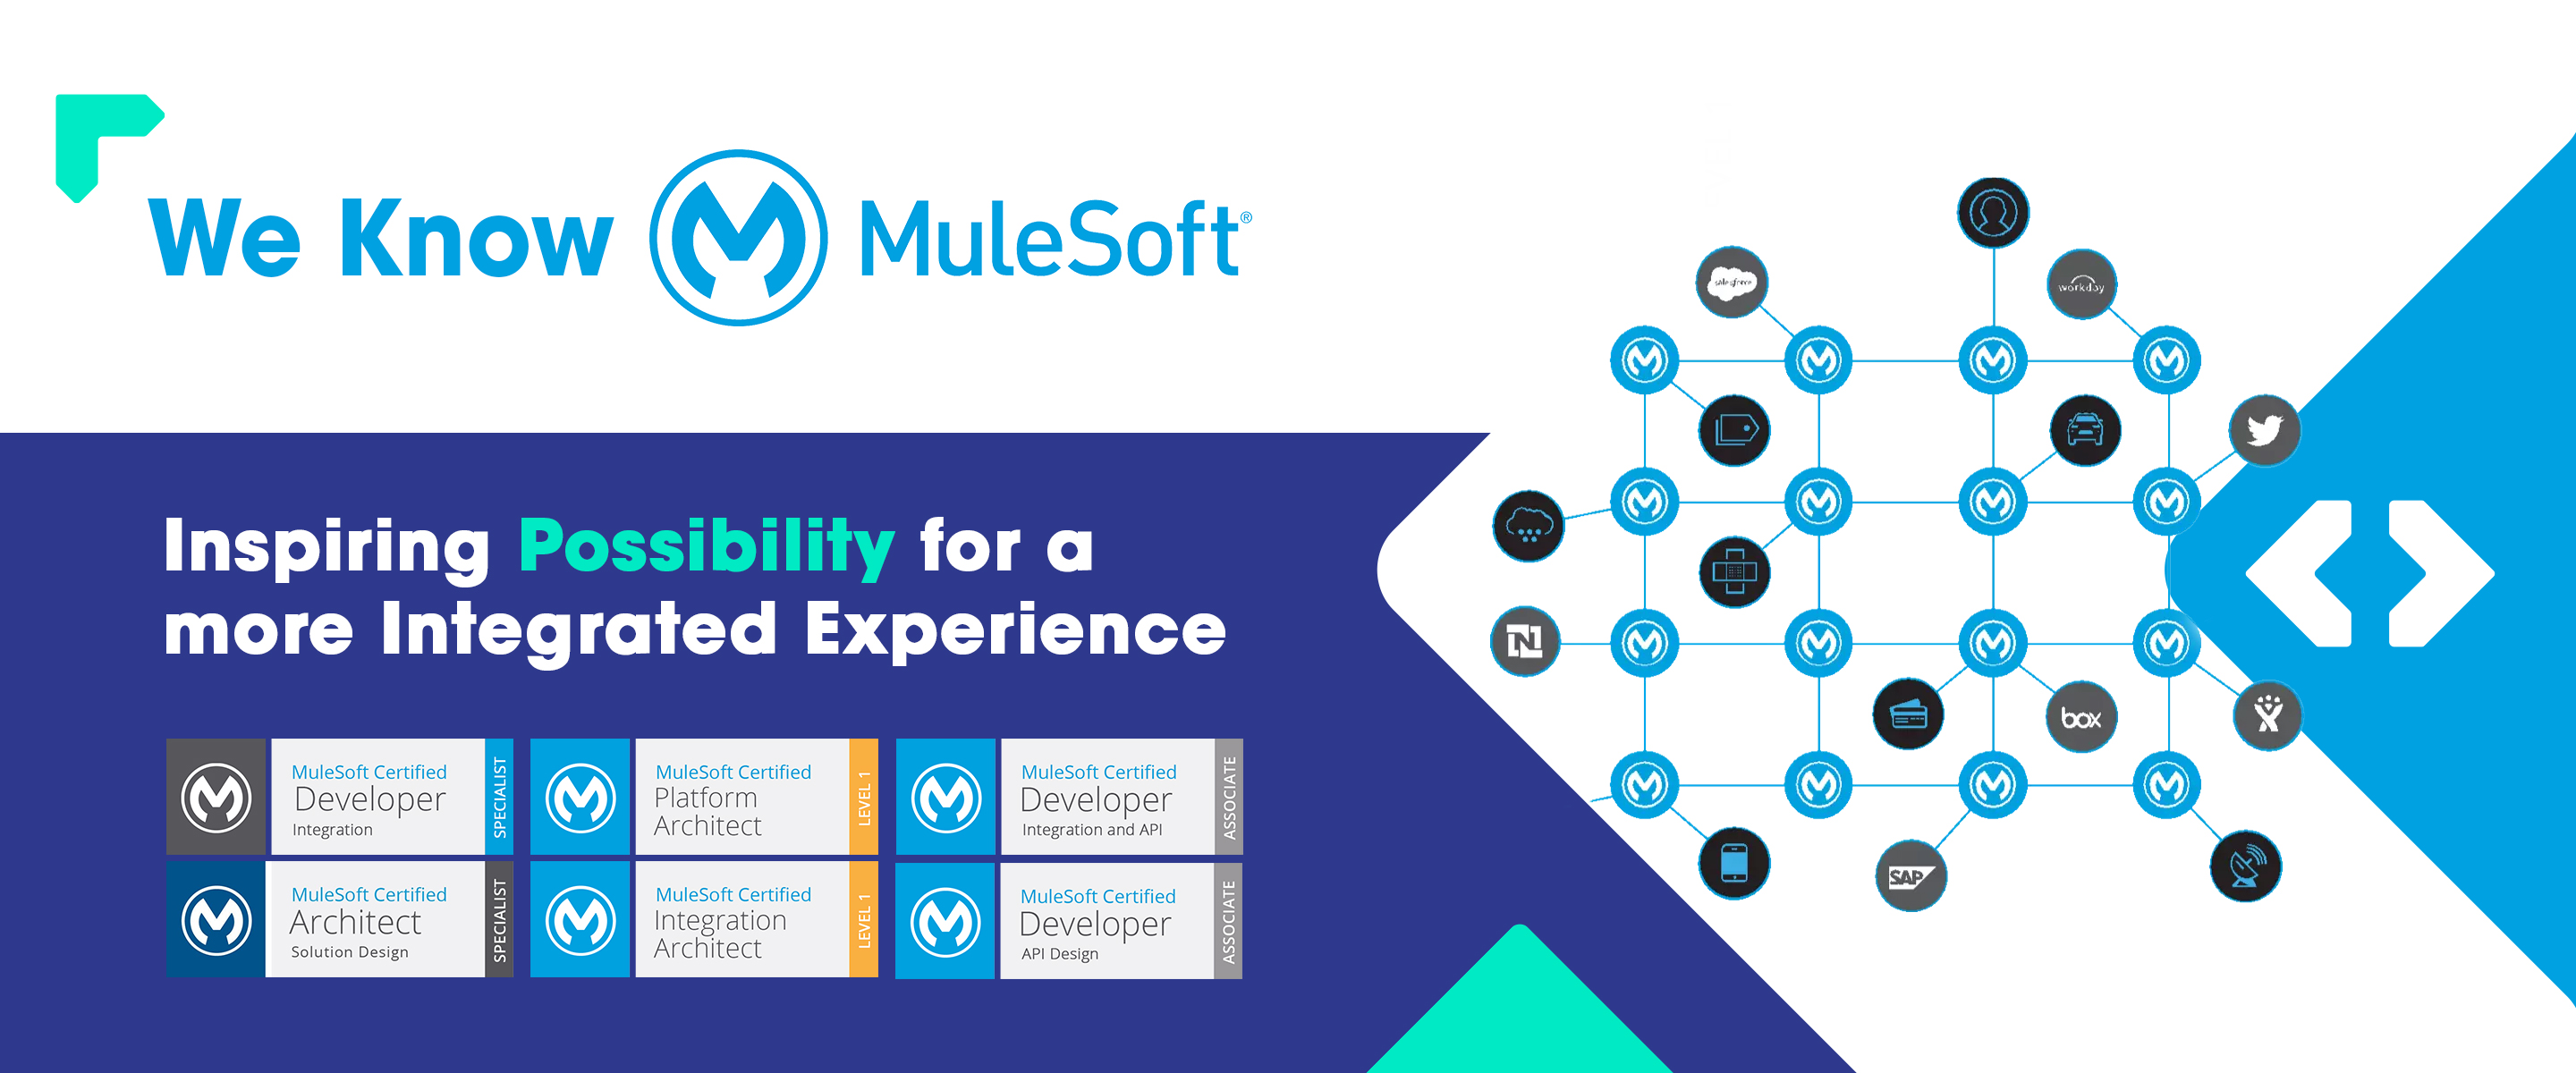 mulesoft consultants, mulesoft consulting